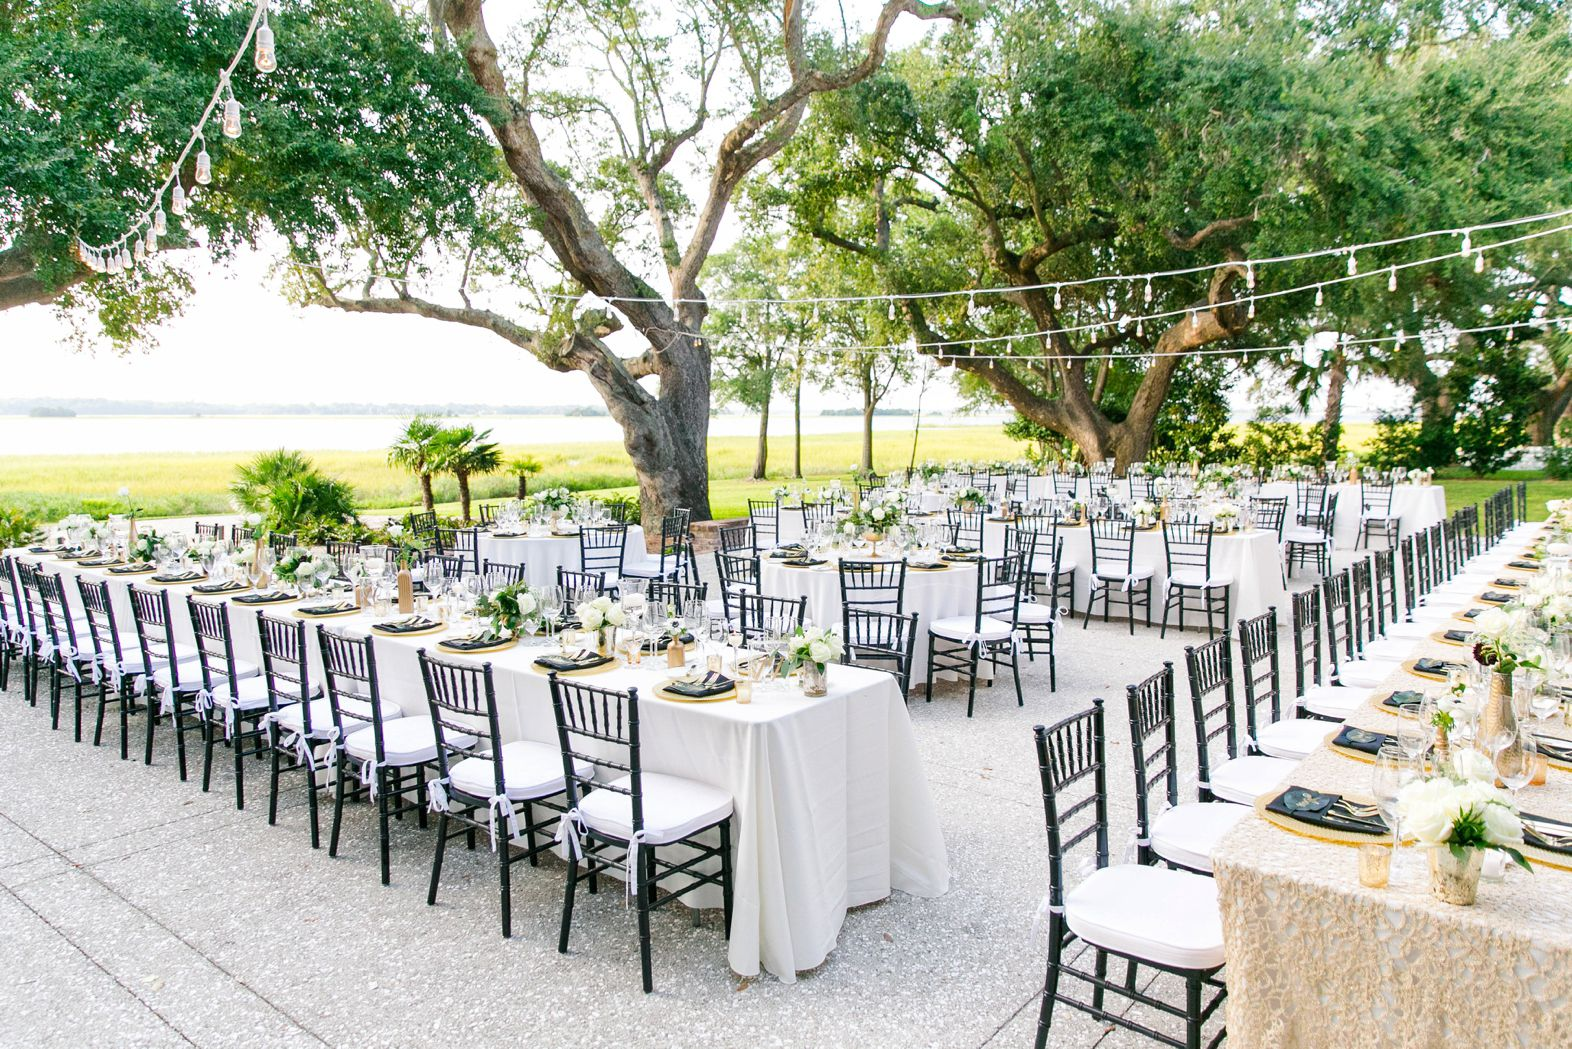 Black folding chairs wedding - Open Air Seating With Family Style Tables Gold Black White Green Lowndes